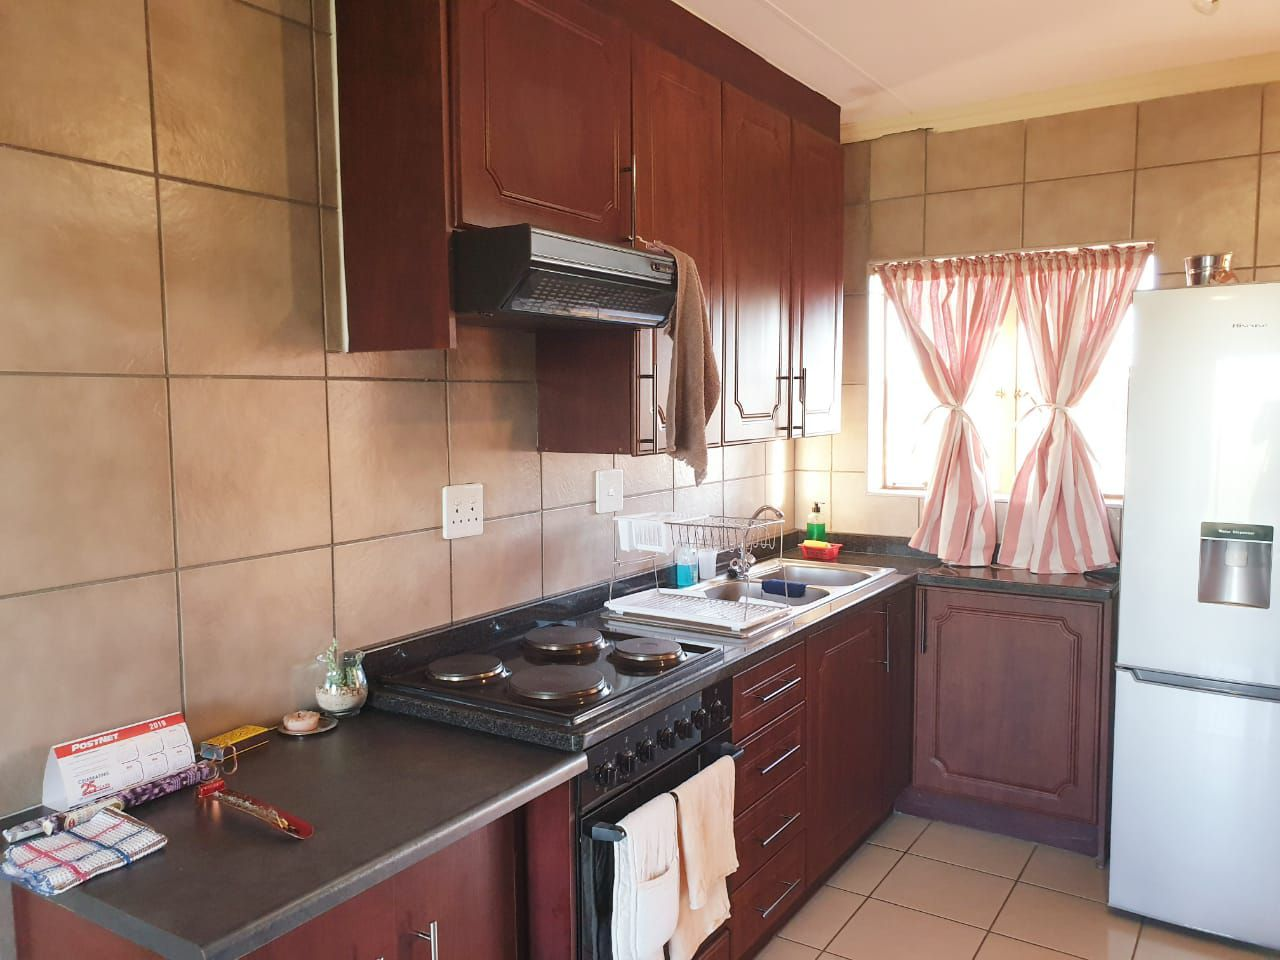 Apartment in Bailliepark - WhatsApp Image 2019-06-13 at 16.59.33.jpeg